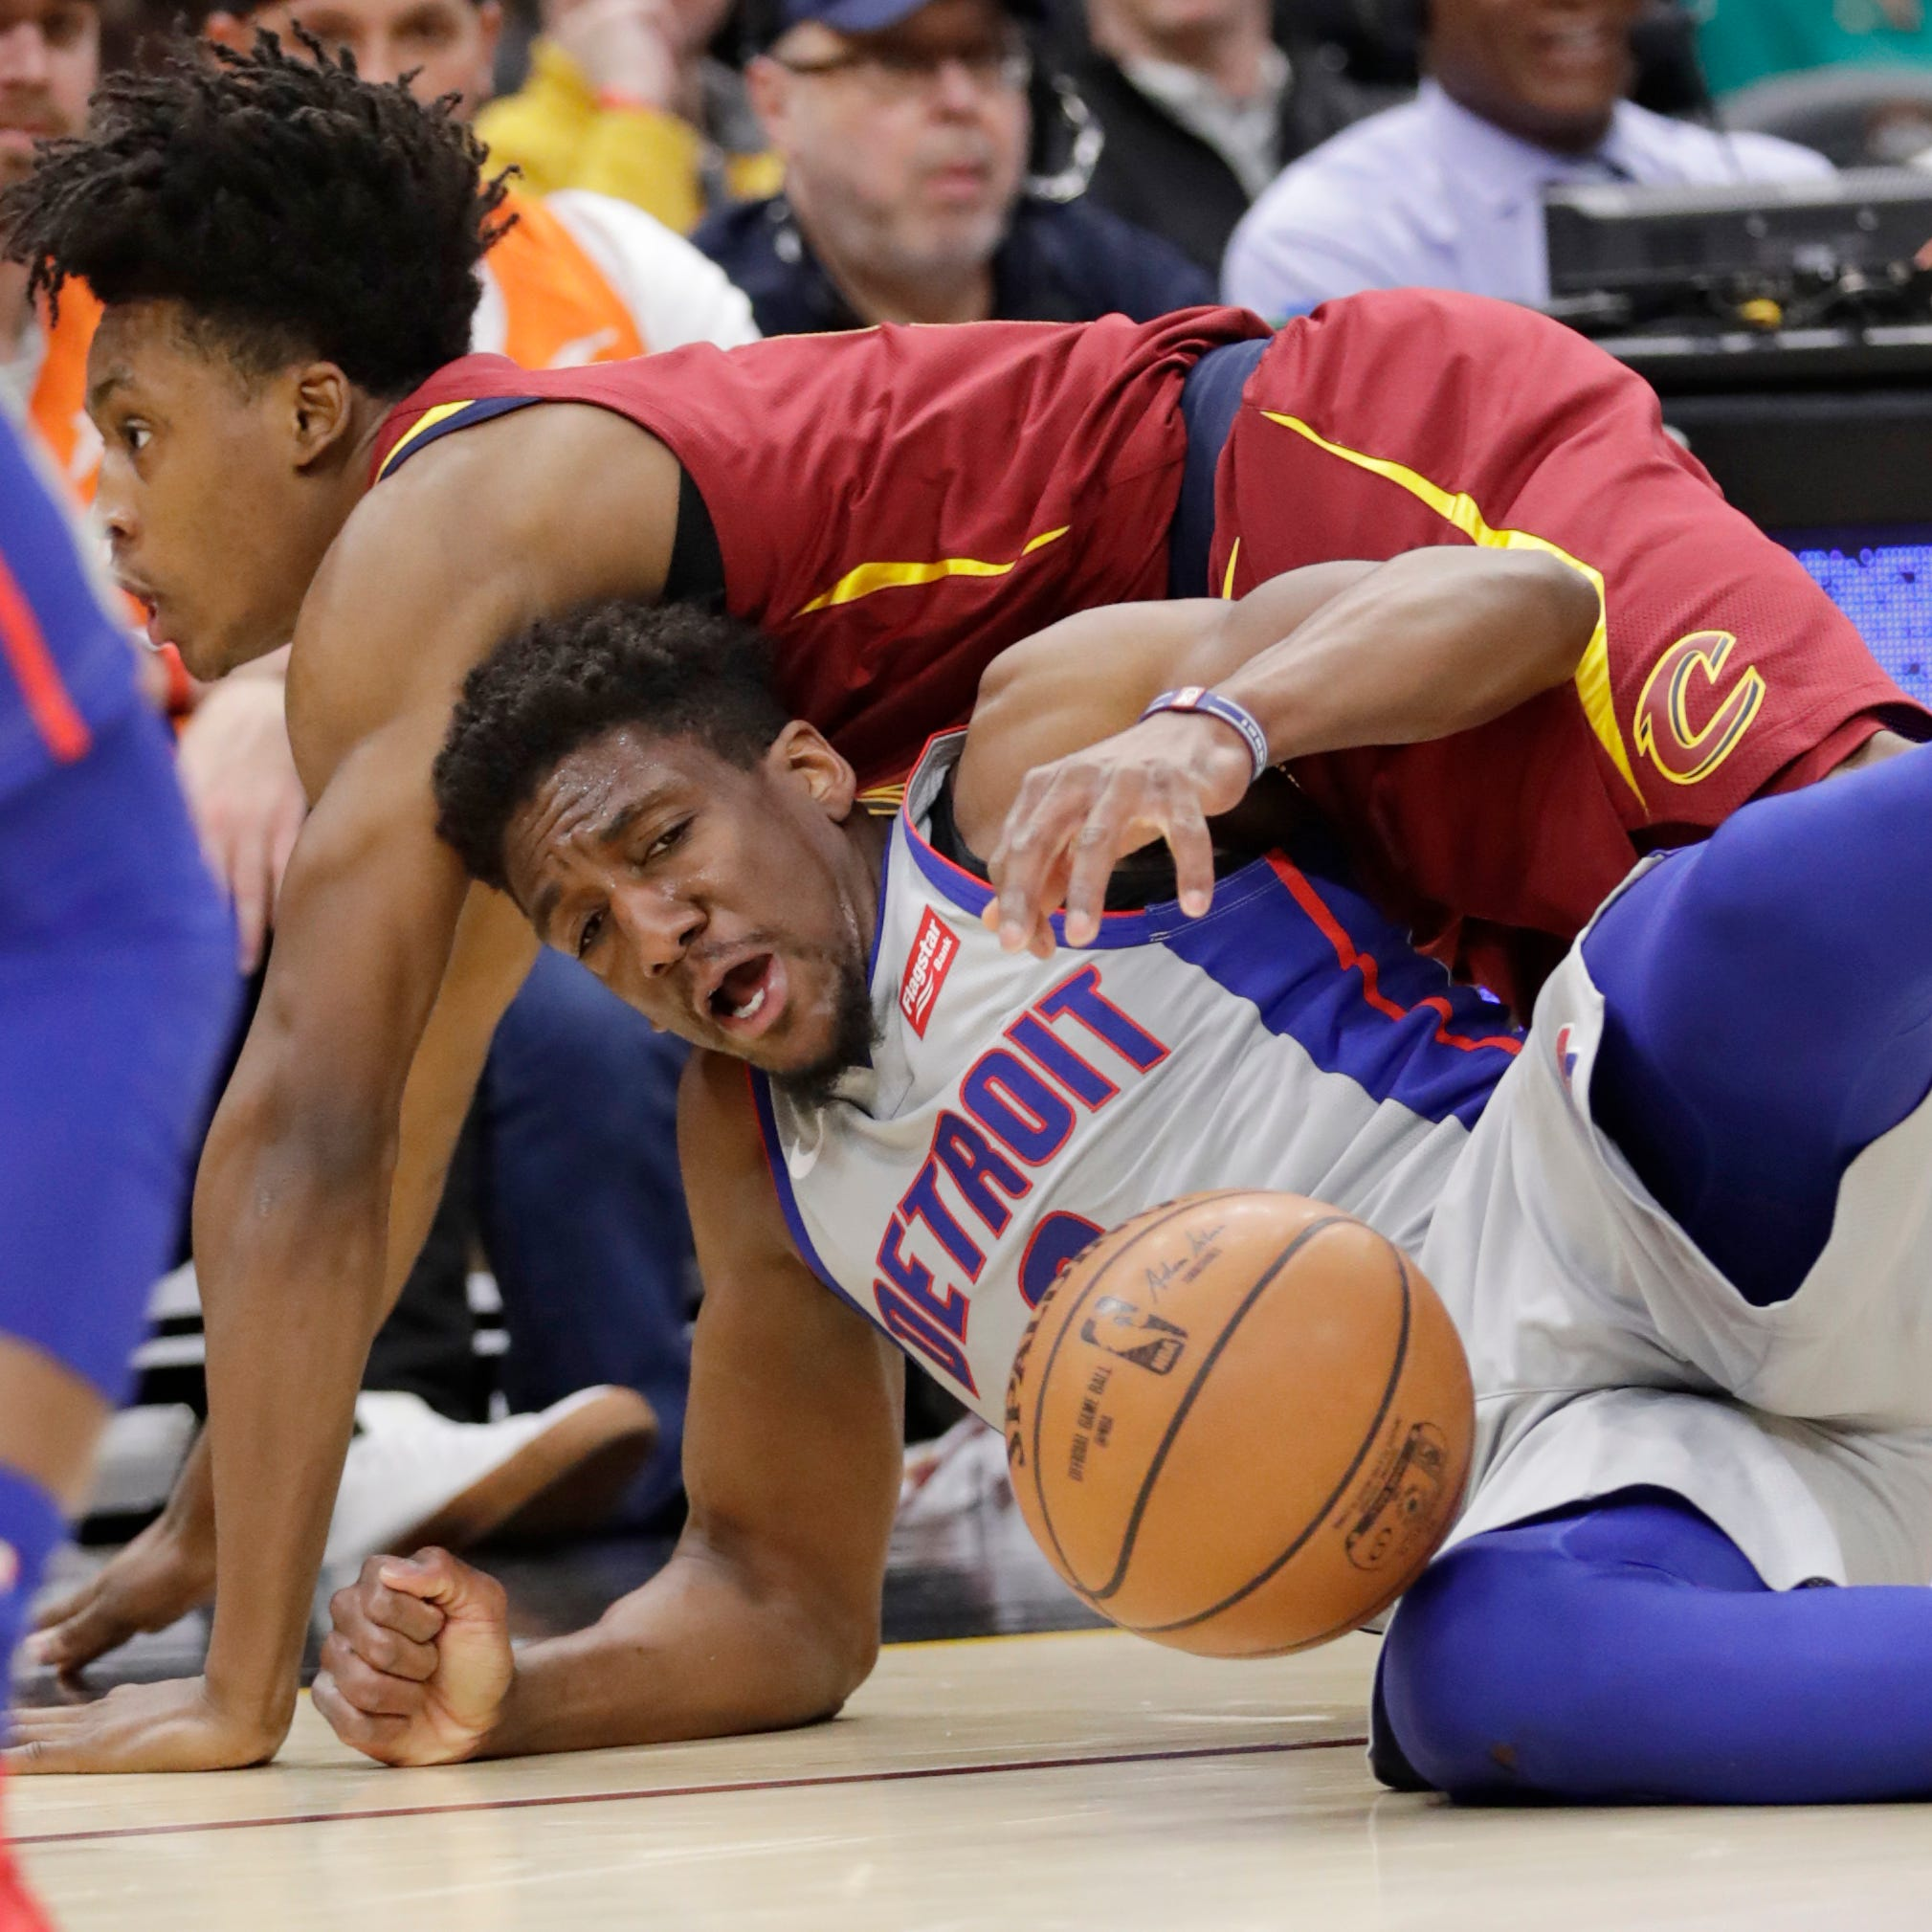 Pistons blow out Cavaliers in most lopsided win of the season